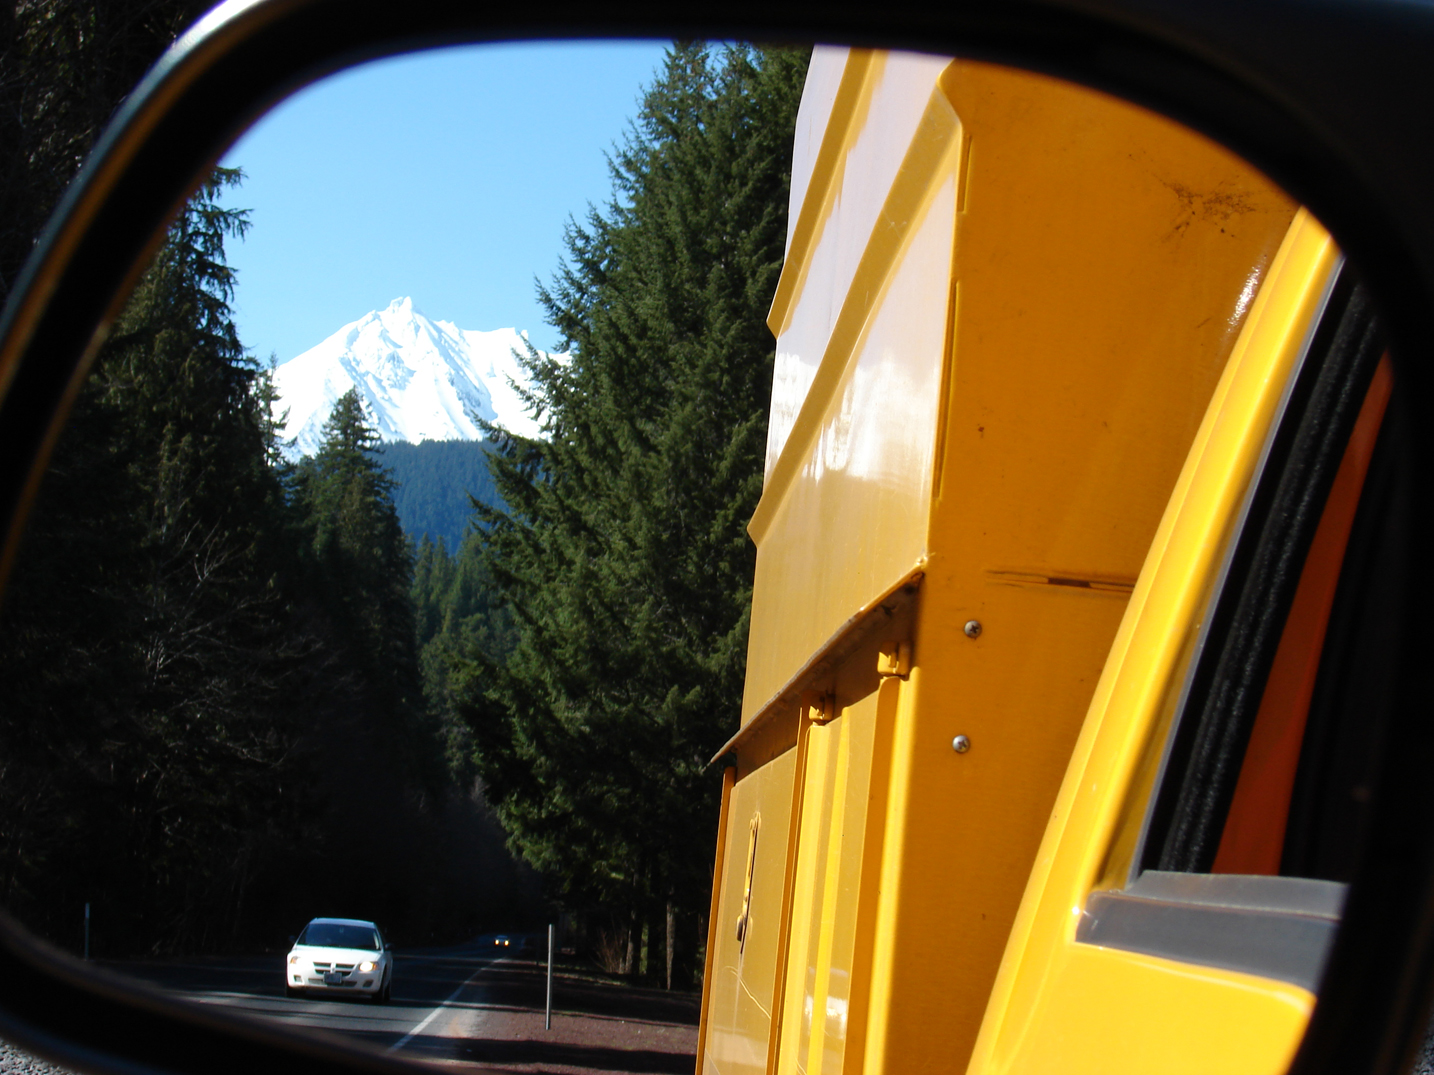 Mt. Jefferson reflected in a truck's mirror